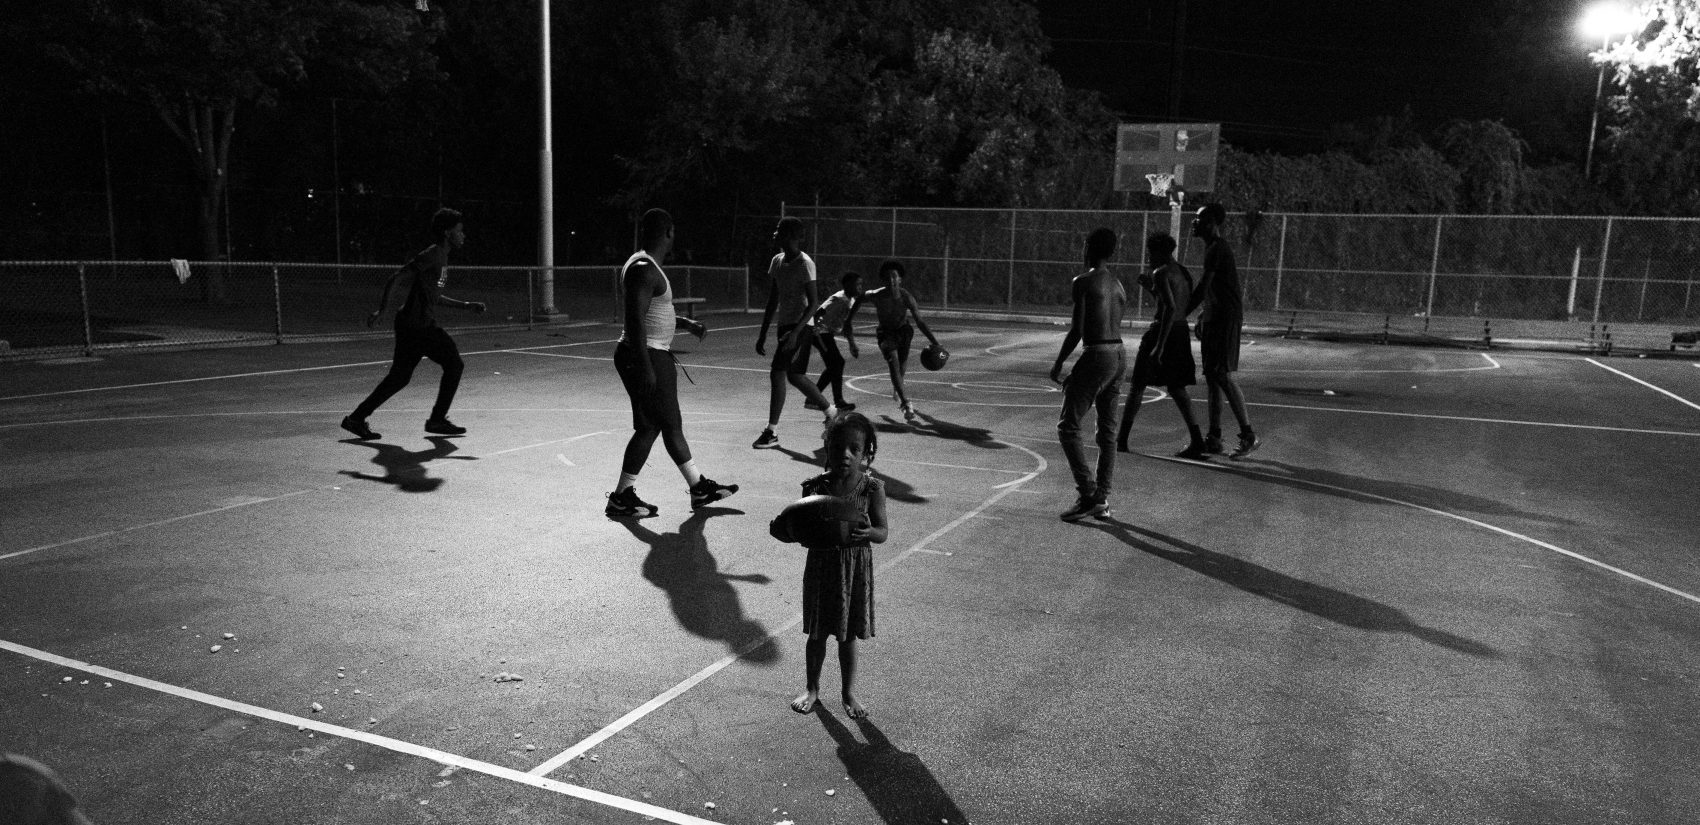 A young girl wanders onto the court during a night game at Gathers. (Jessica Kourkounis for Keystone Crossroads)